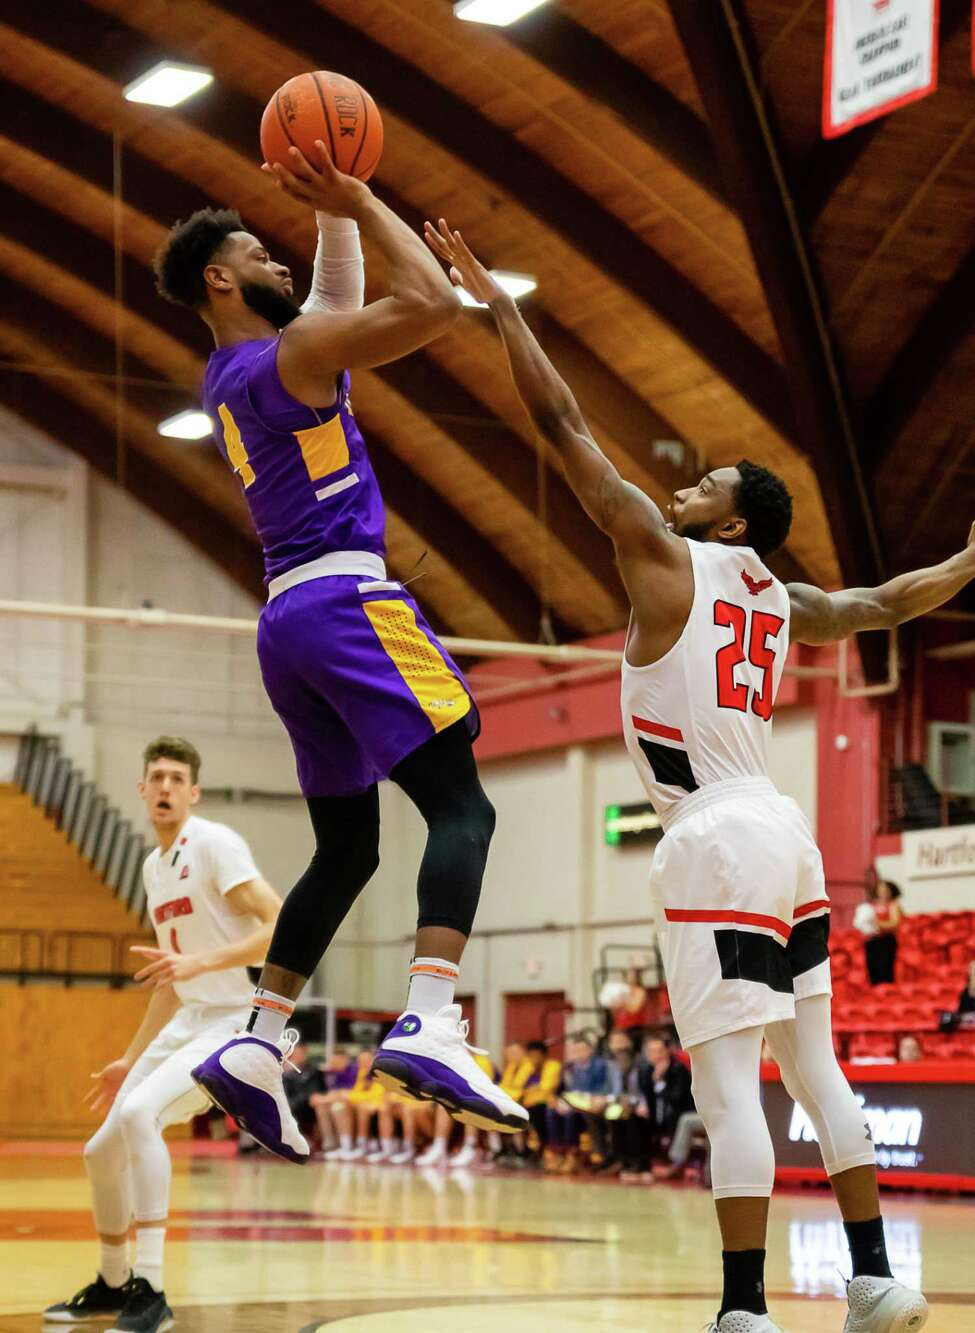 Ahmad Clark goes up for a shot against Hartford on Wednesday, February 12, 2020. (Courtesy Brent Warzocha)